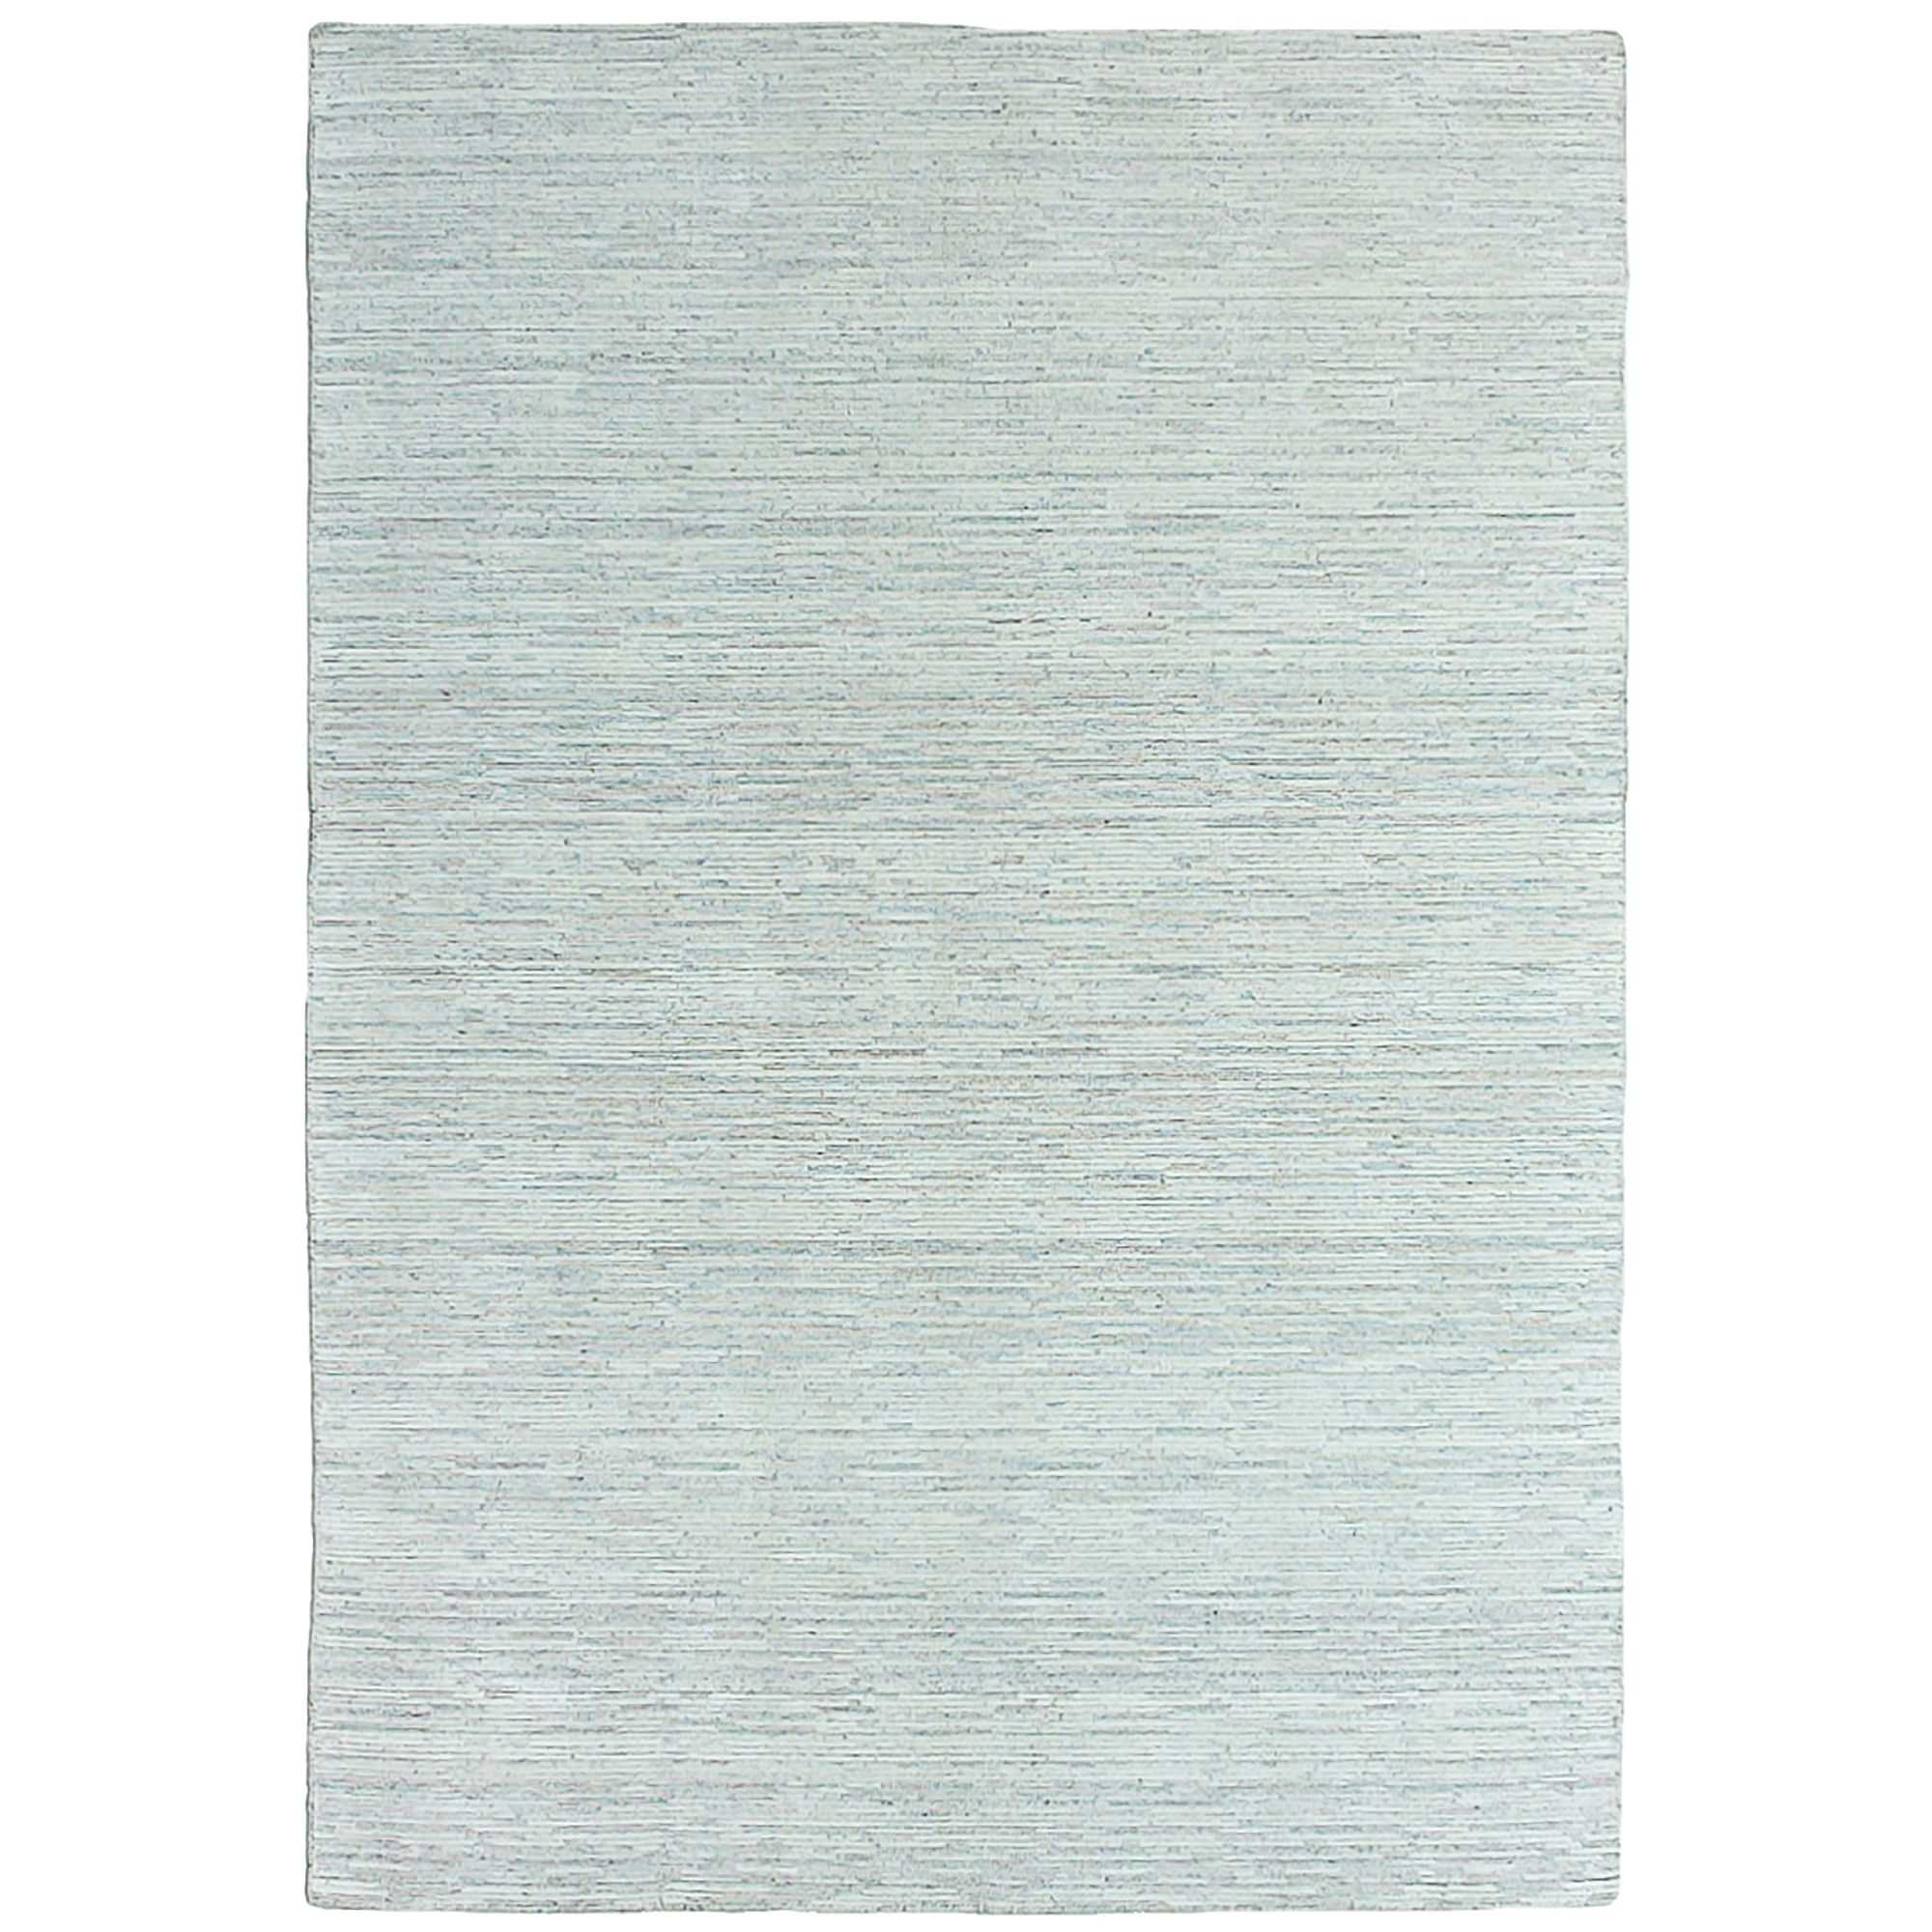 Timeless Stokes Hand Loomed Wool & Viscose Rug, 250x350cm, Natural / Grey